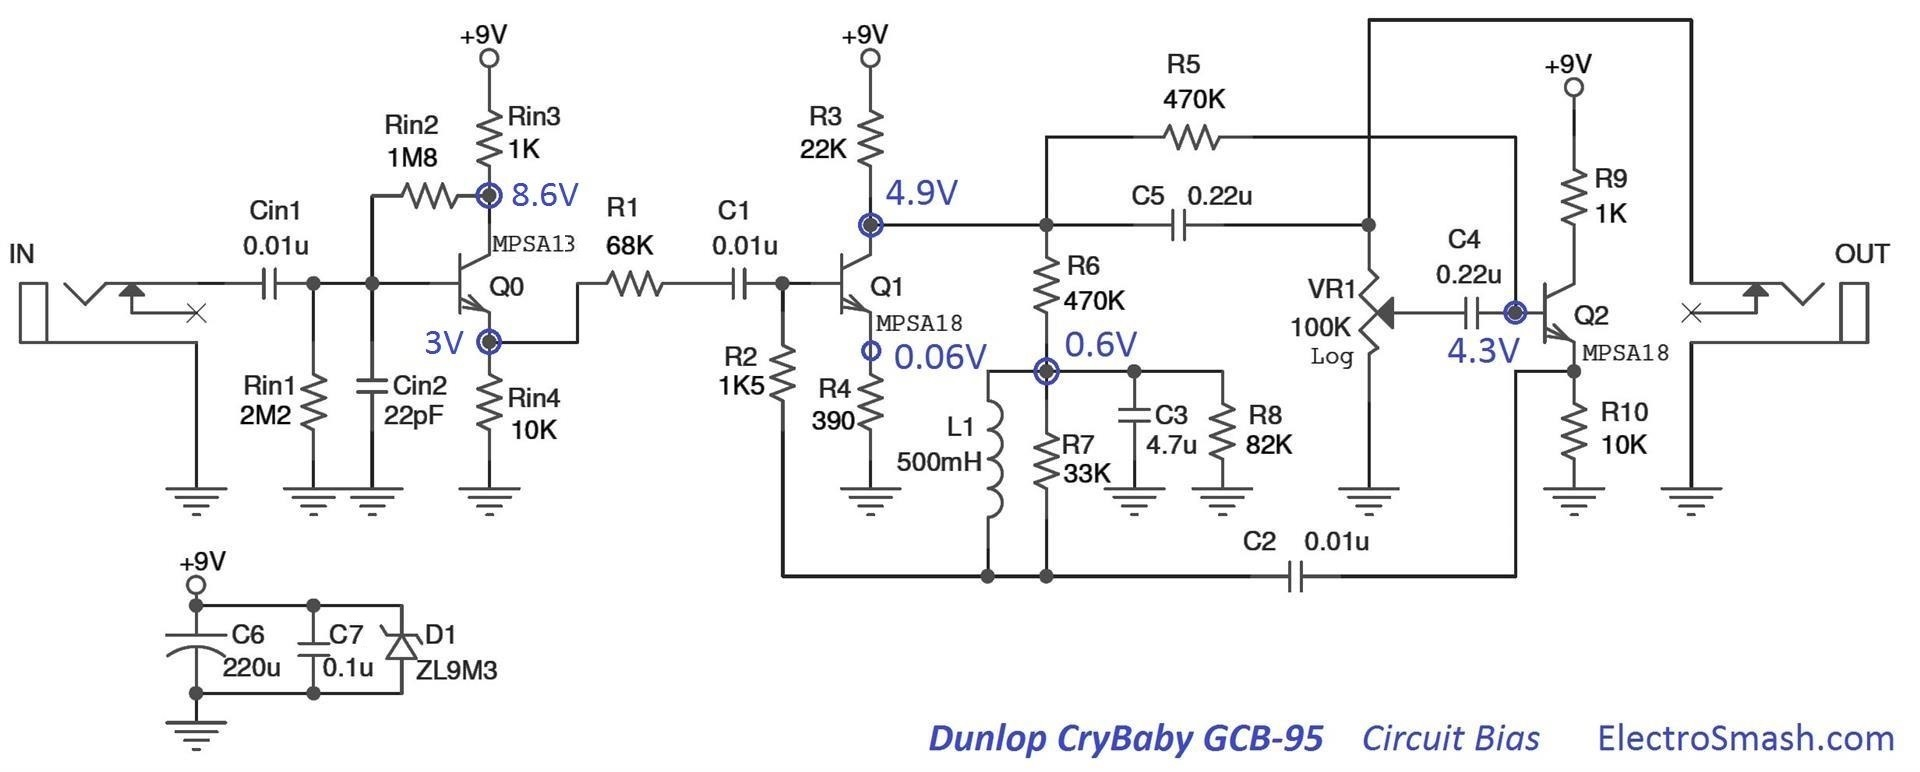 cry baby wah gcb 95 bias electrosmash dunlop crybaby gcb 95 circuit analysis crybaby gcb-95 wiring diagram at eliteediting.co